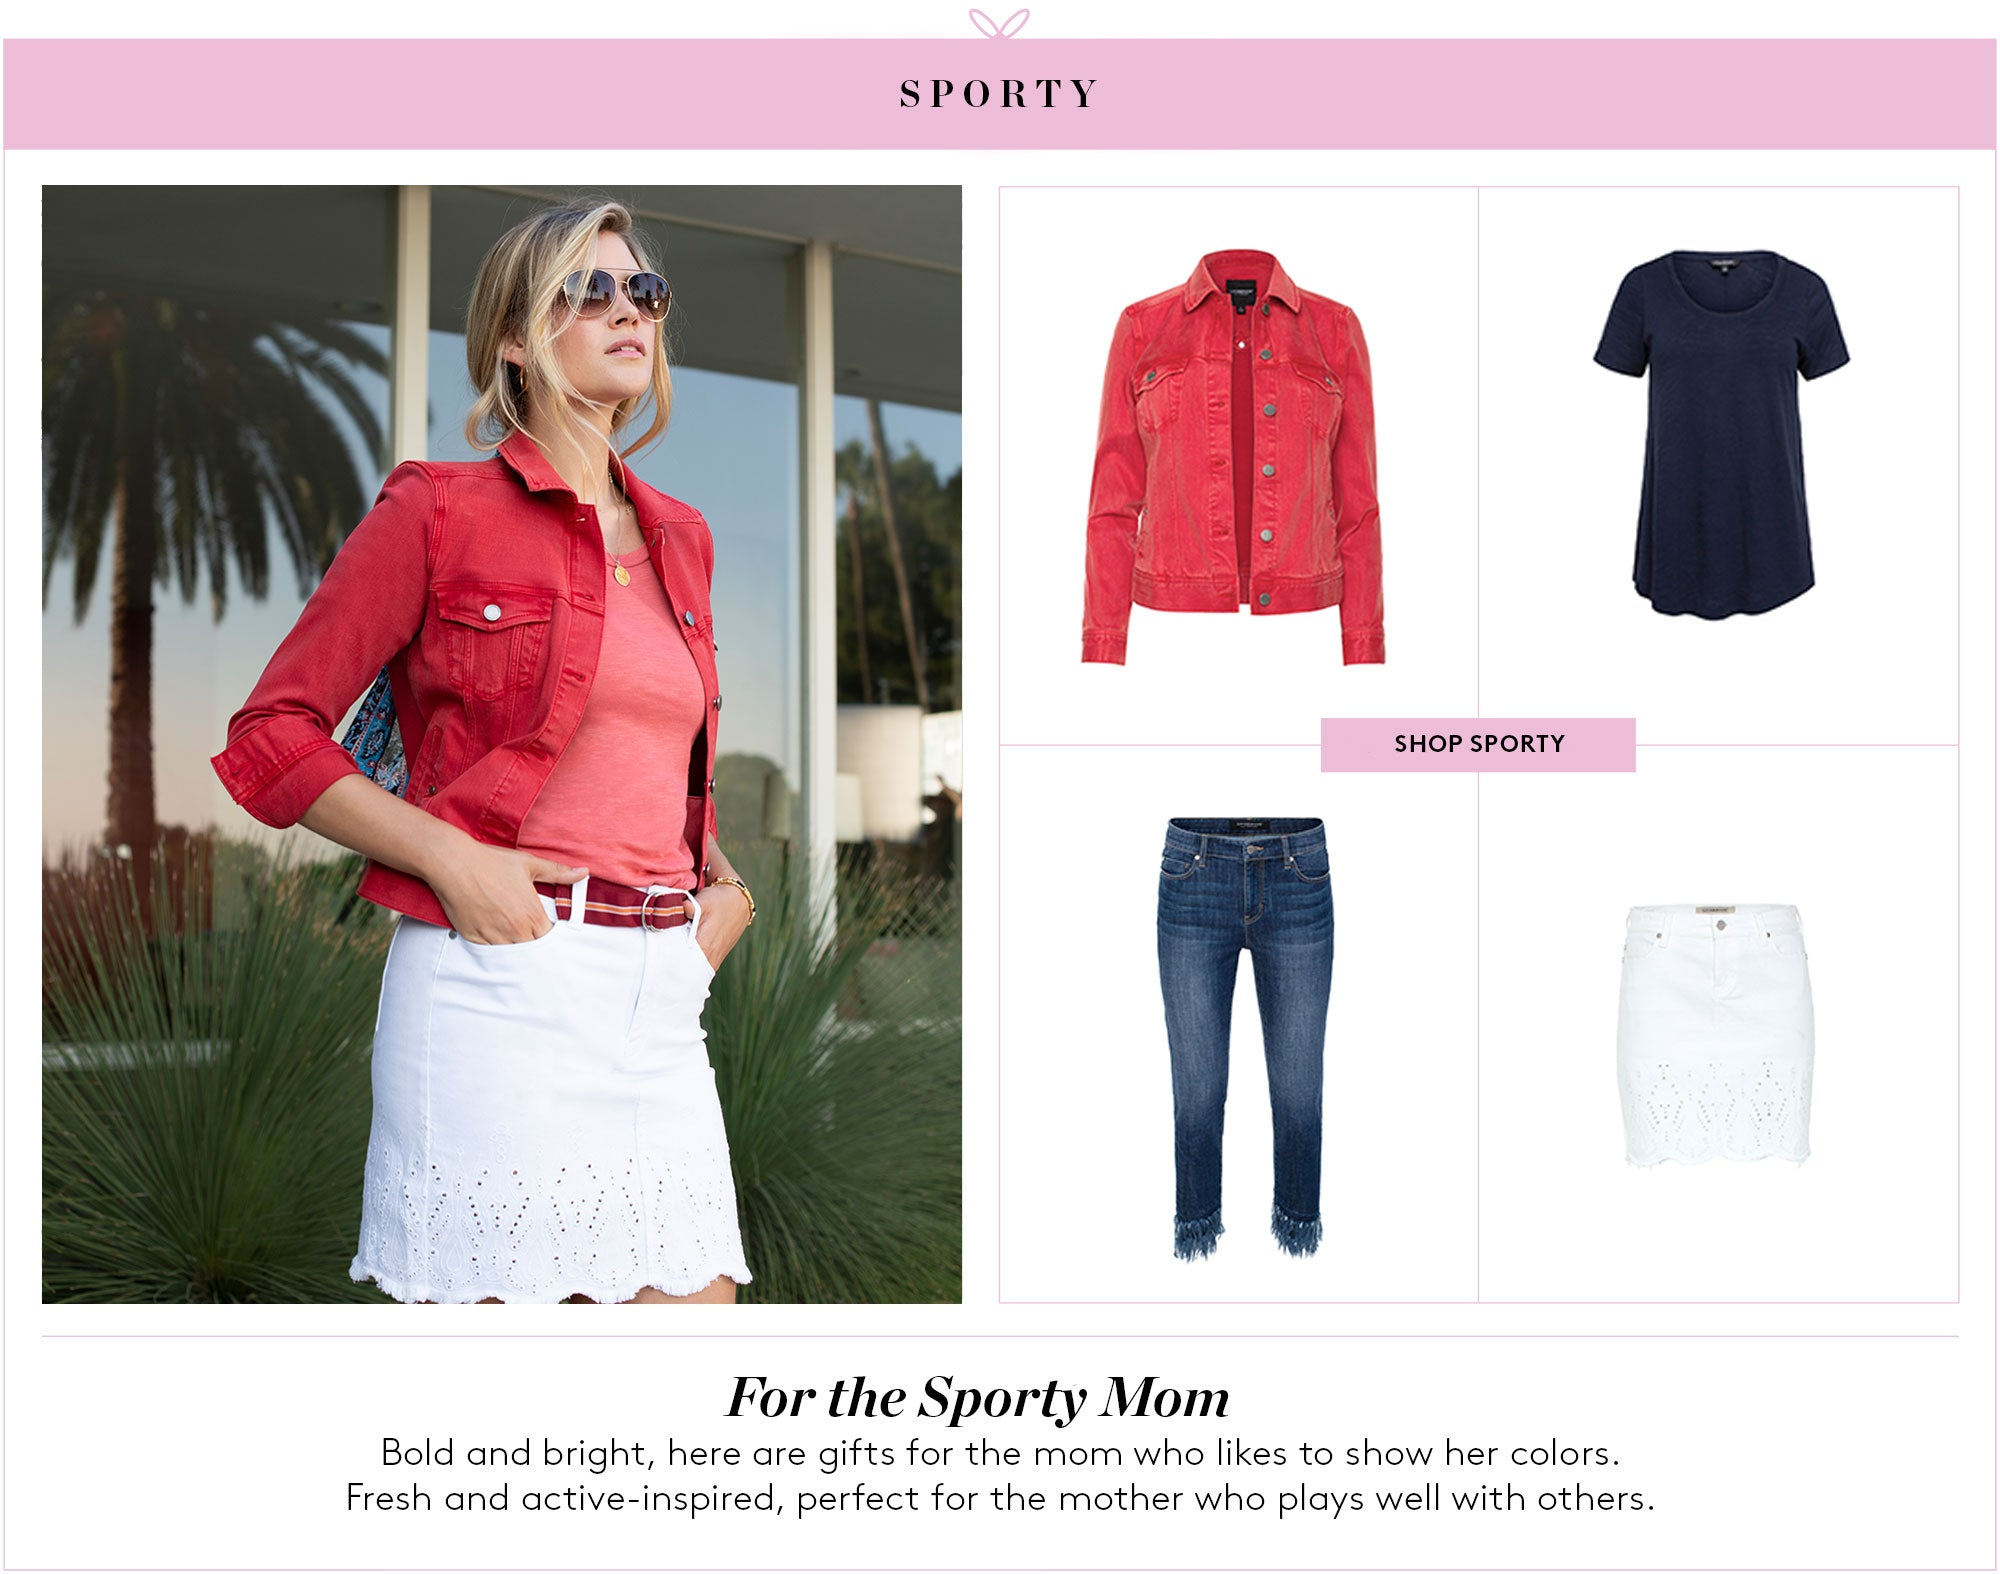 For the Sporty Mom: Bold and bright, here are gifts for the mom who likes to show her colors.  Fresh and active-inspired, perfect for the mother who plays well with others.